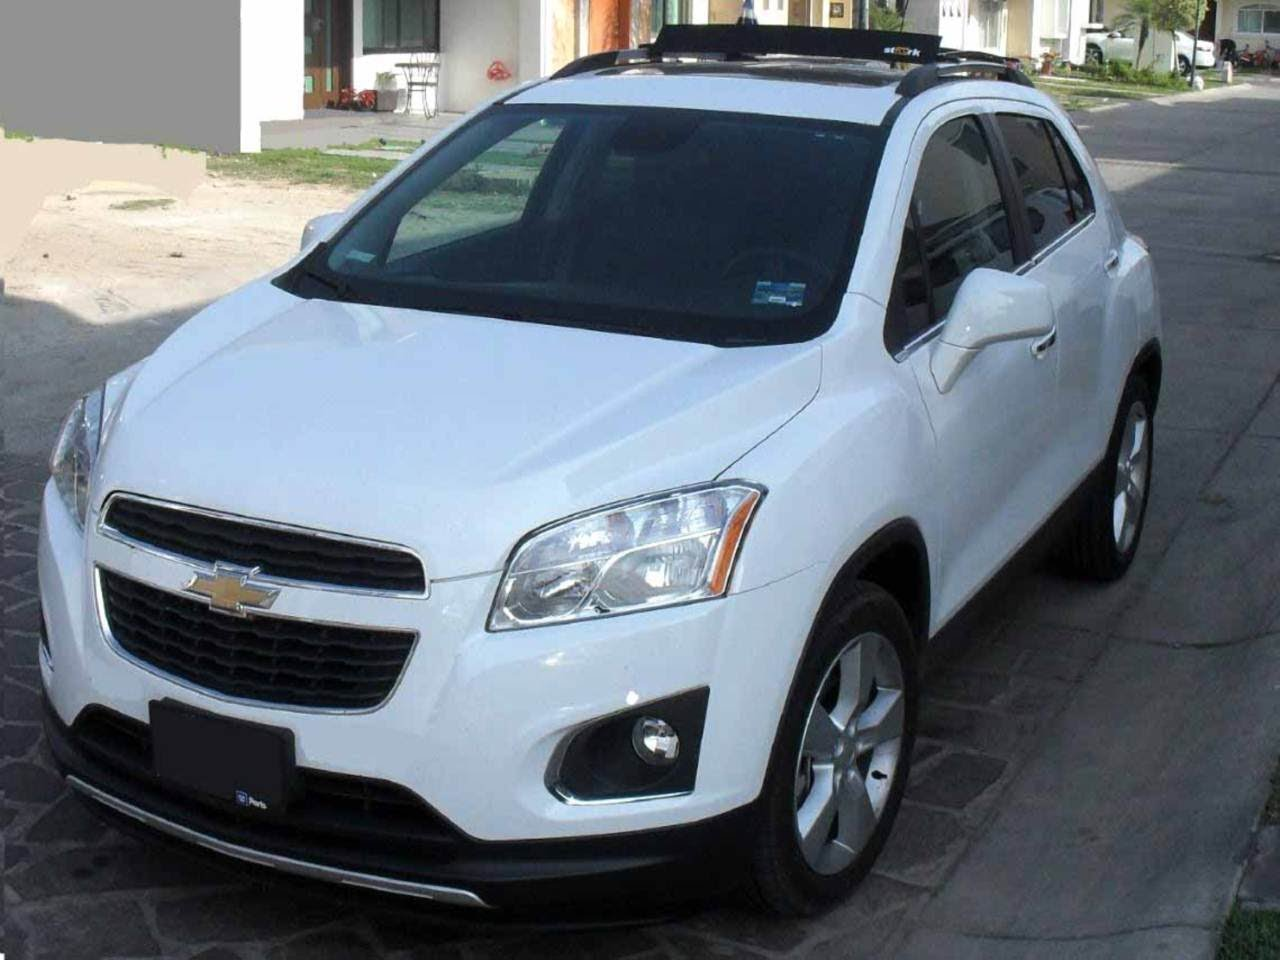 Cars chevrolet tracker